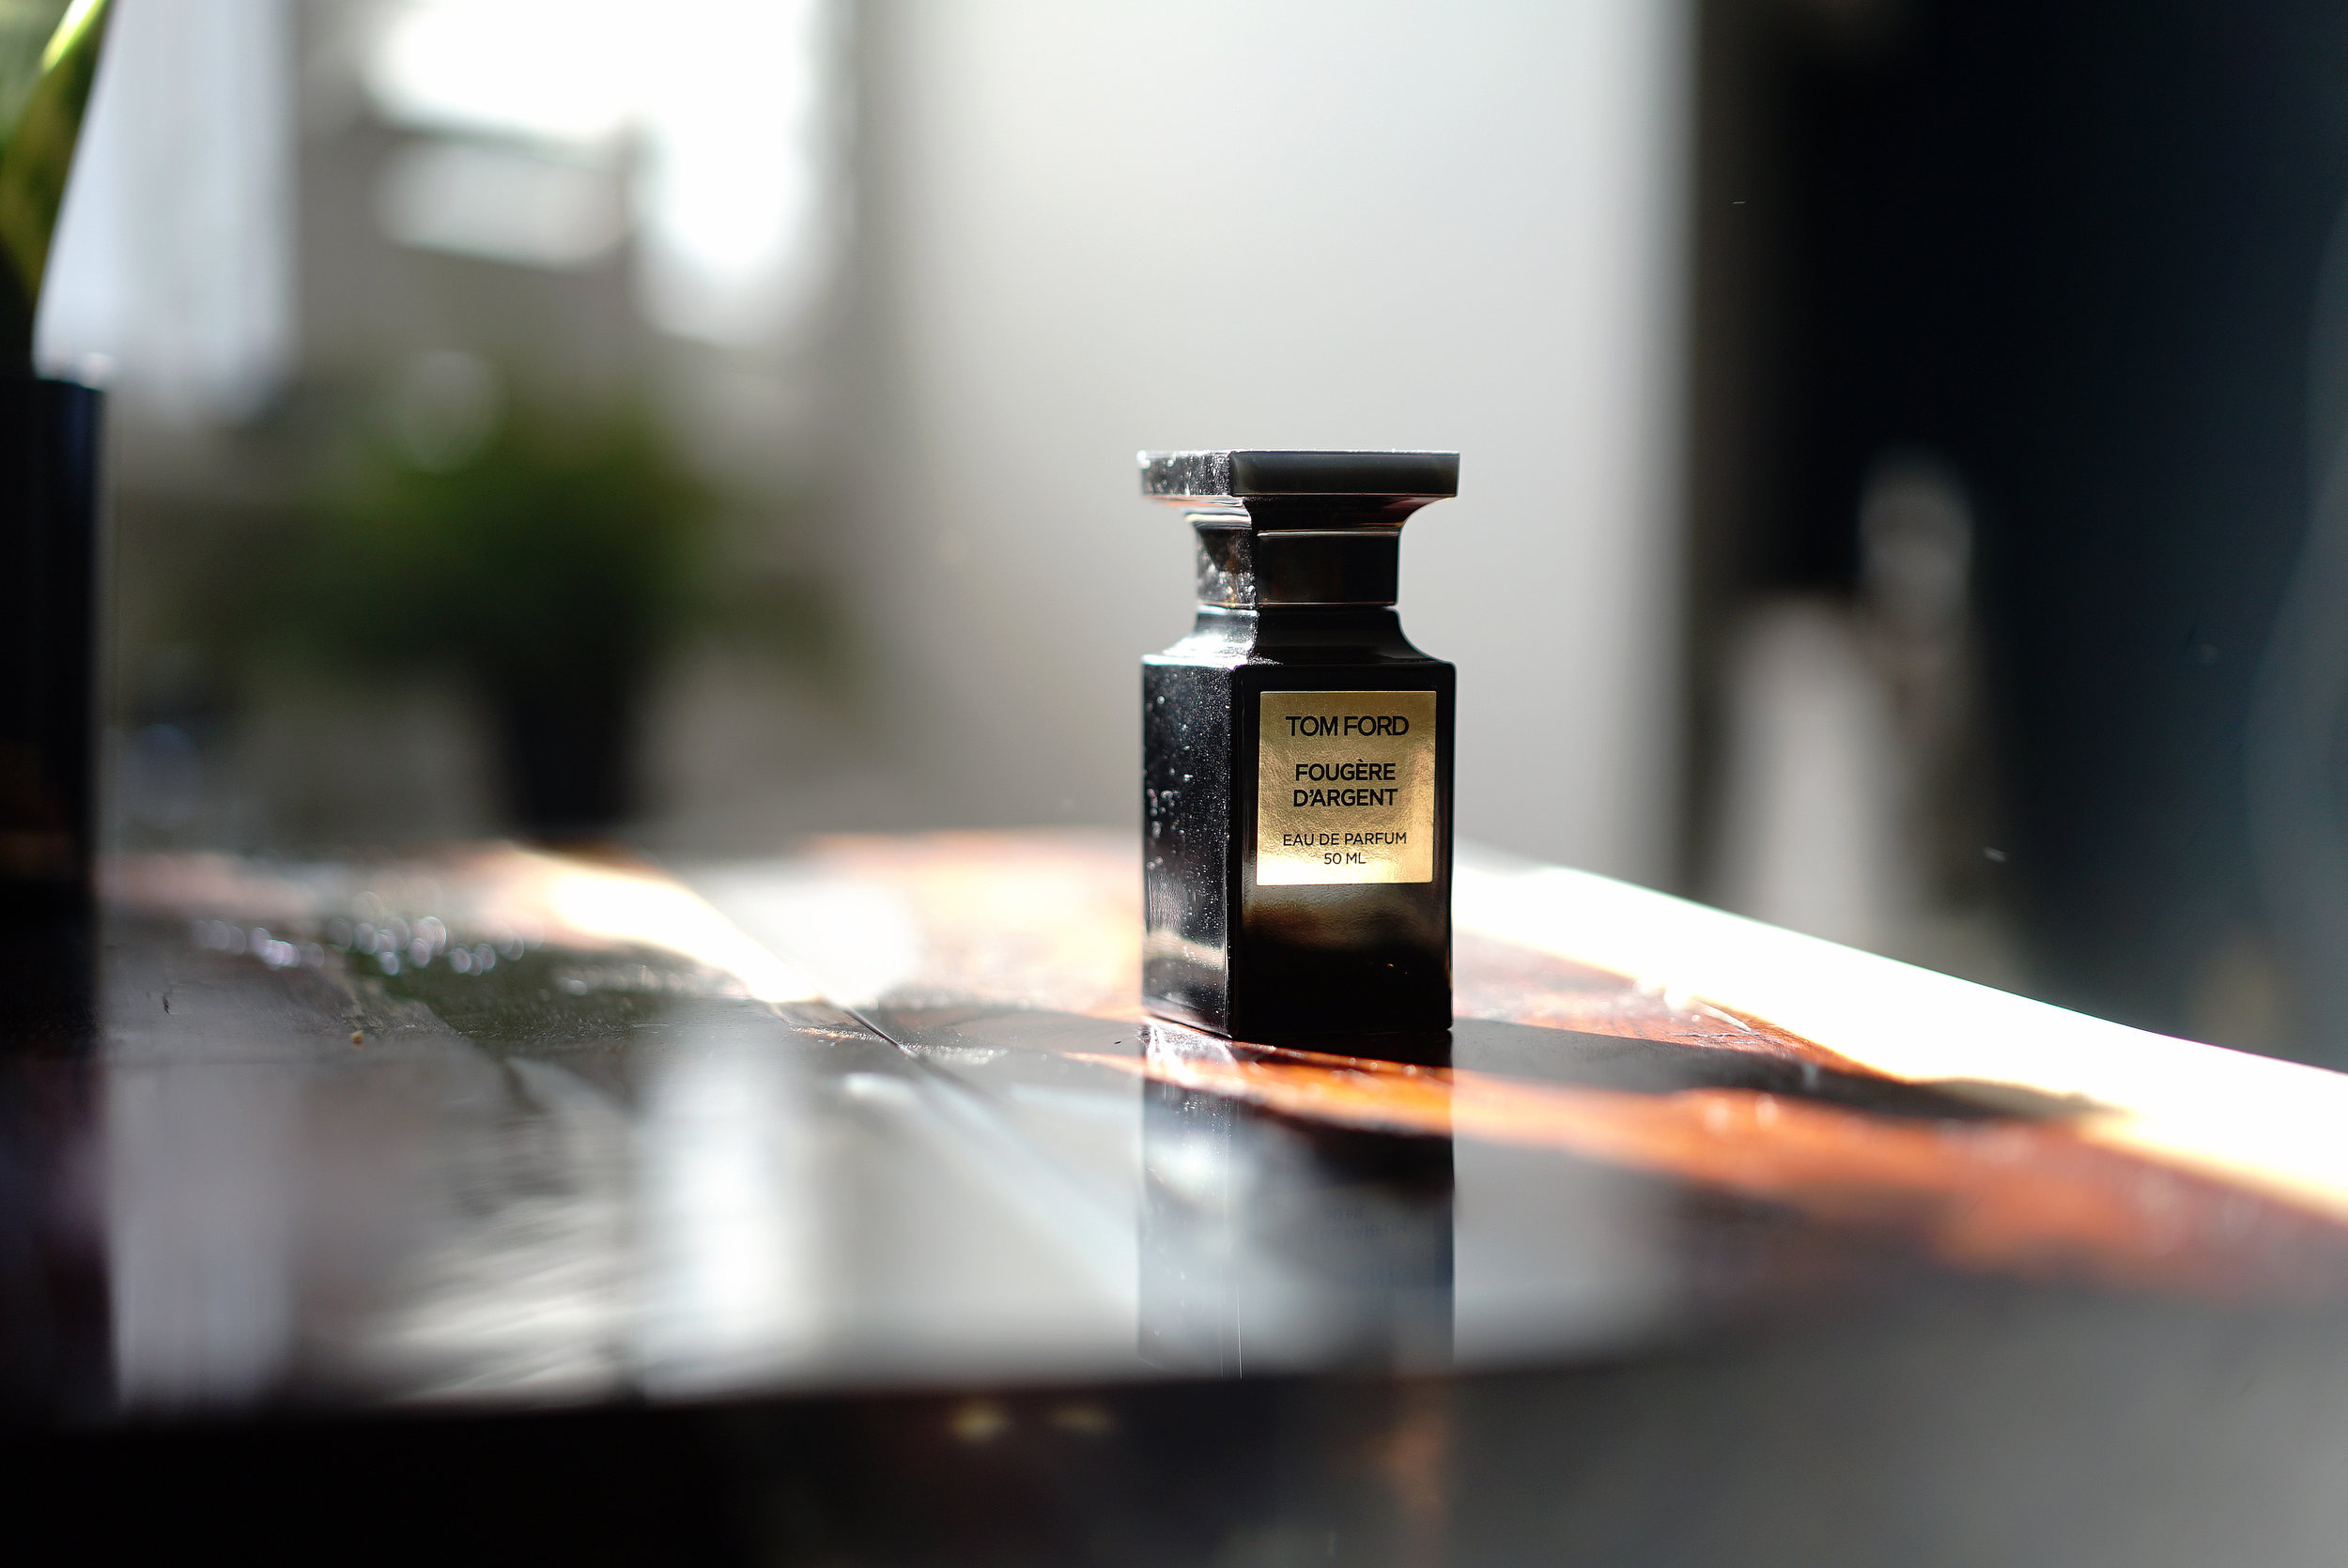 Tom Ford Fougere DArgent 2.jpg